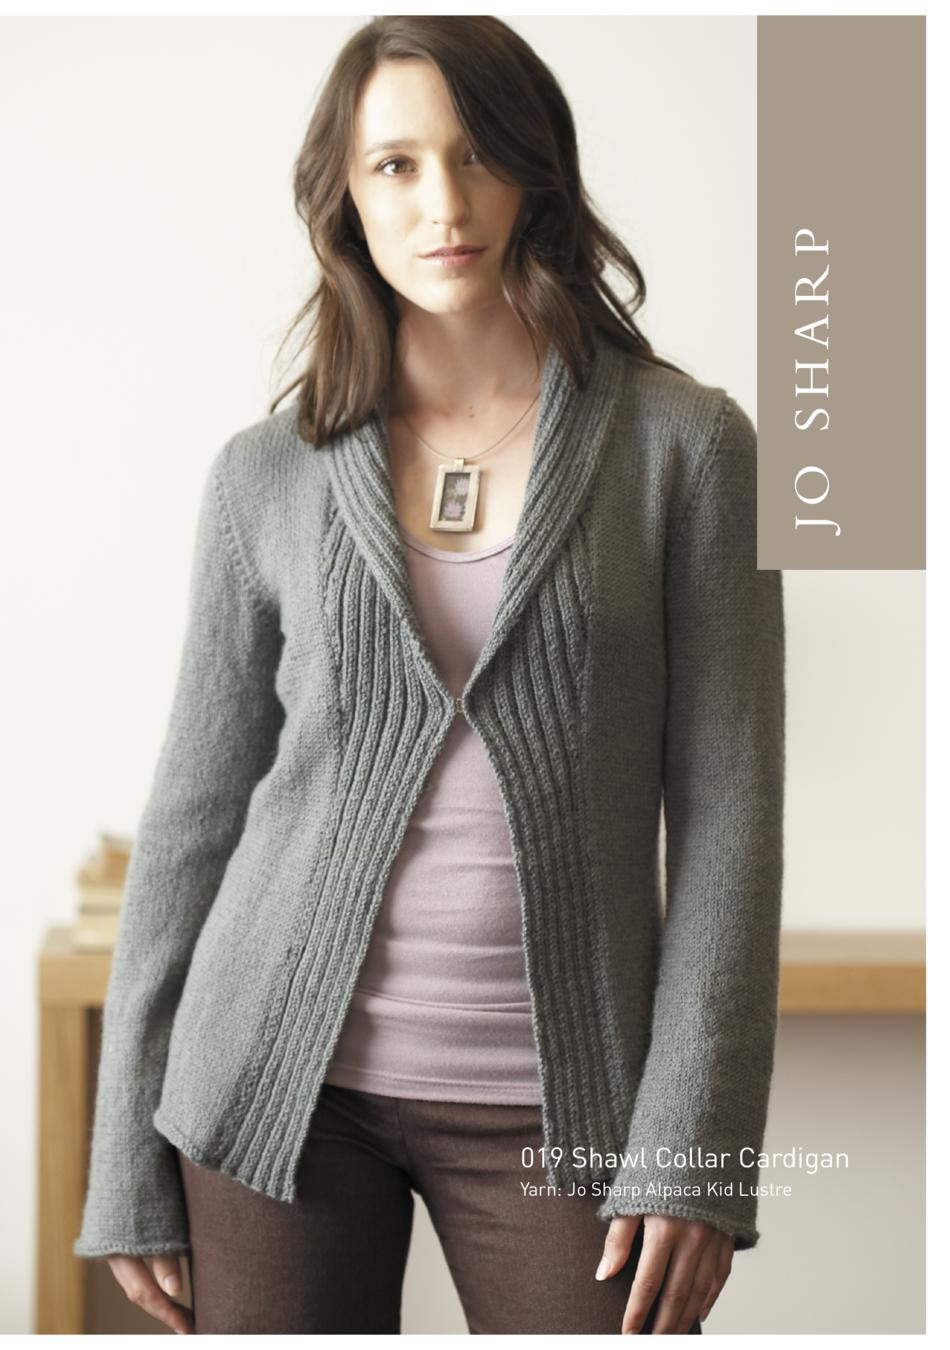 Jo Sharp Shawl Collar Cardigan and Coat Pattern, Knitting Pattern - Halcyon Yarn